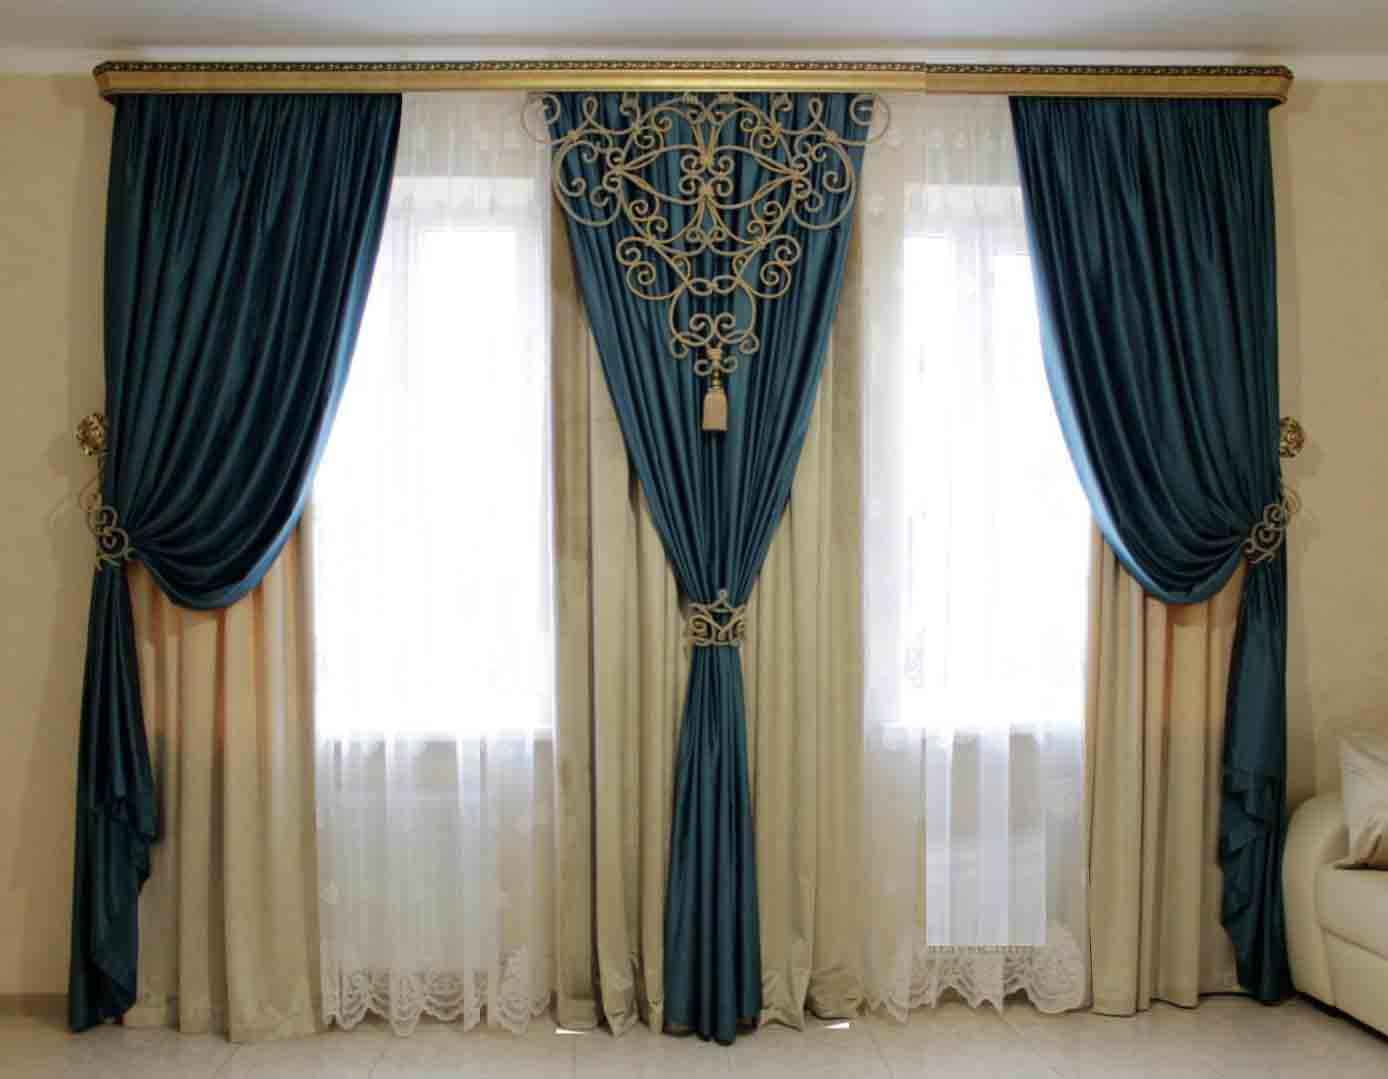 Captivating Modern Curtains Designs For Living Room Hall Window Treatment